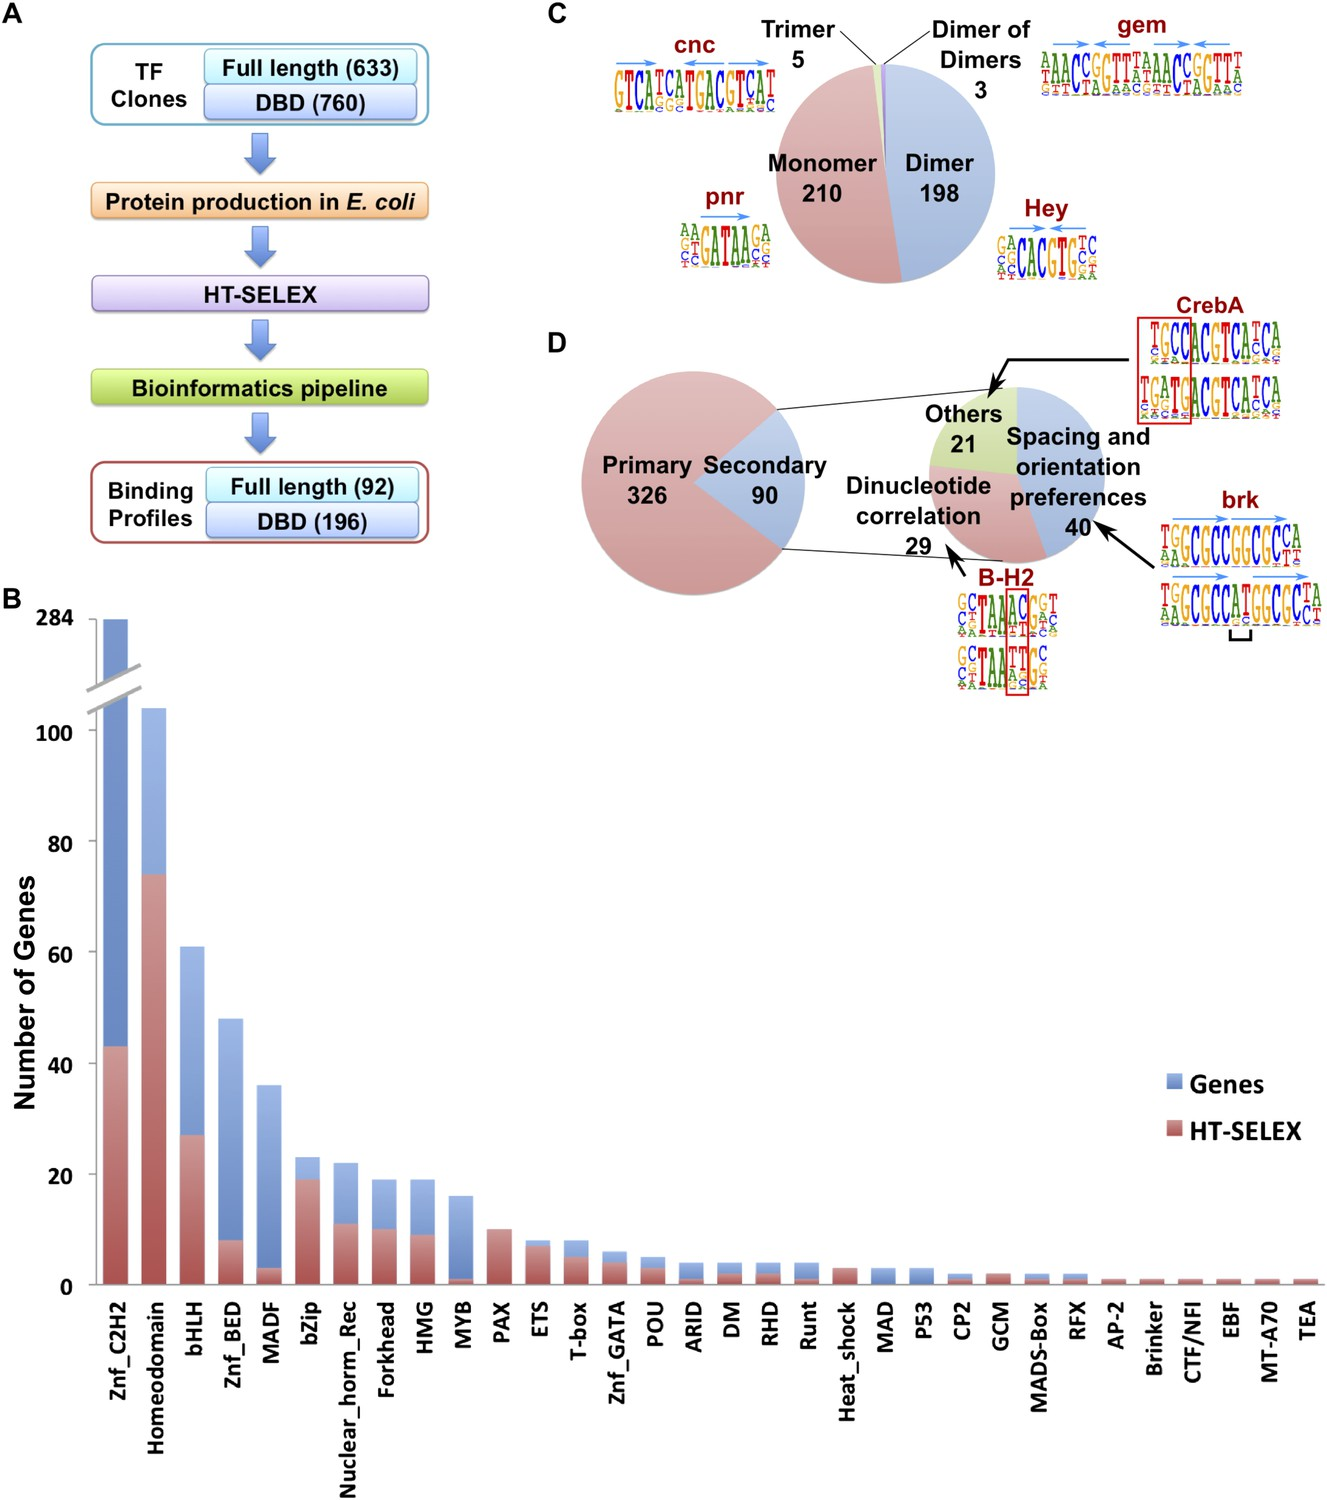 Conservation of transcription factor binding specificities across